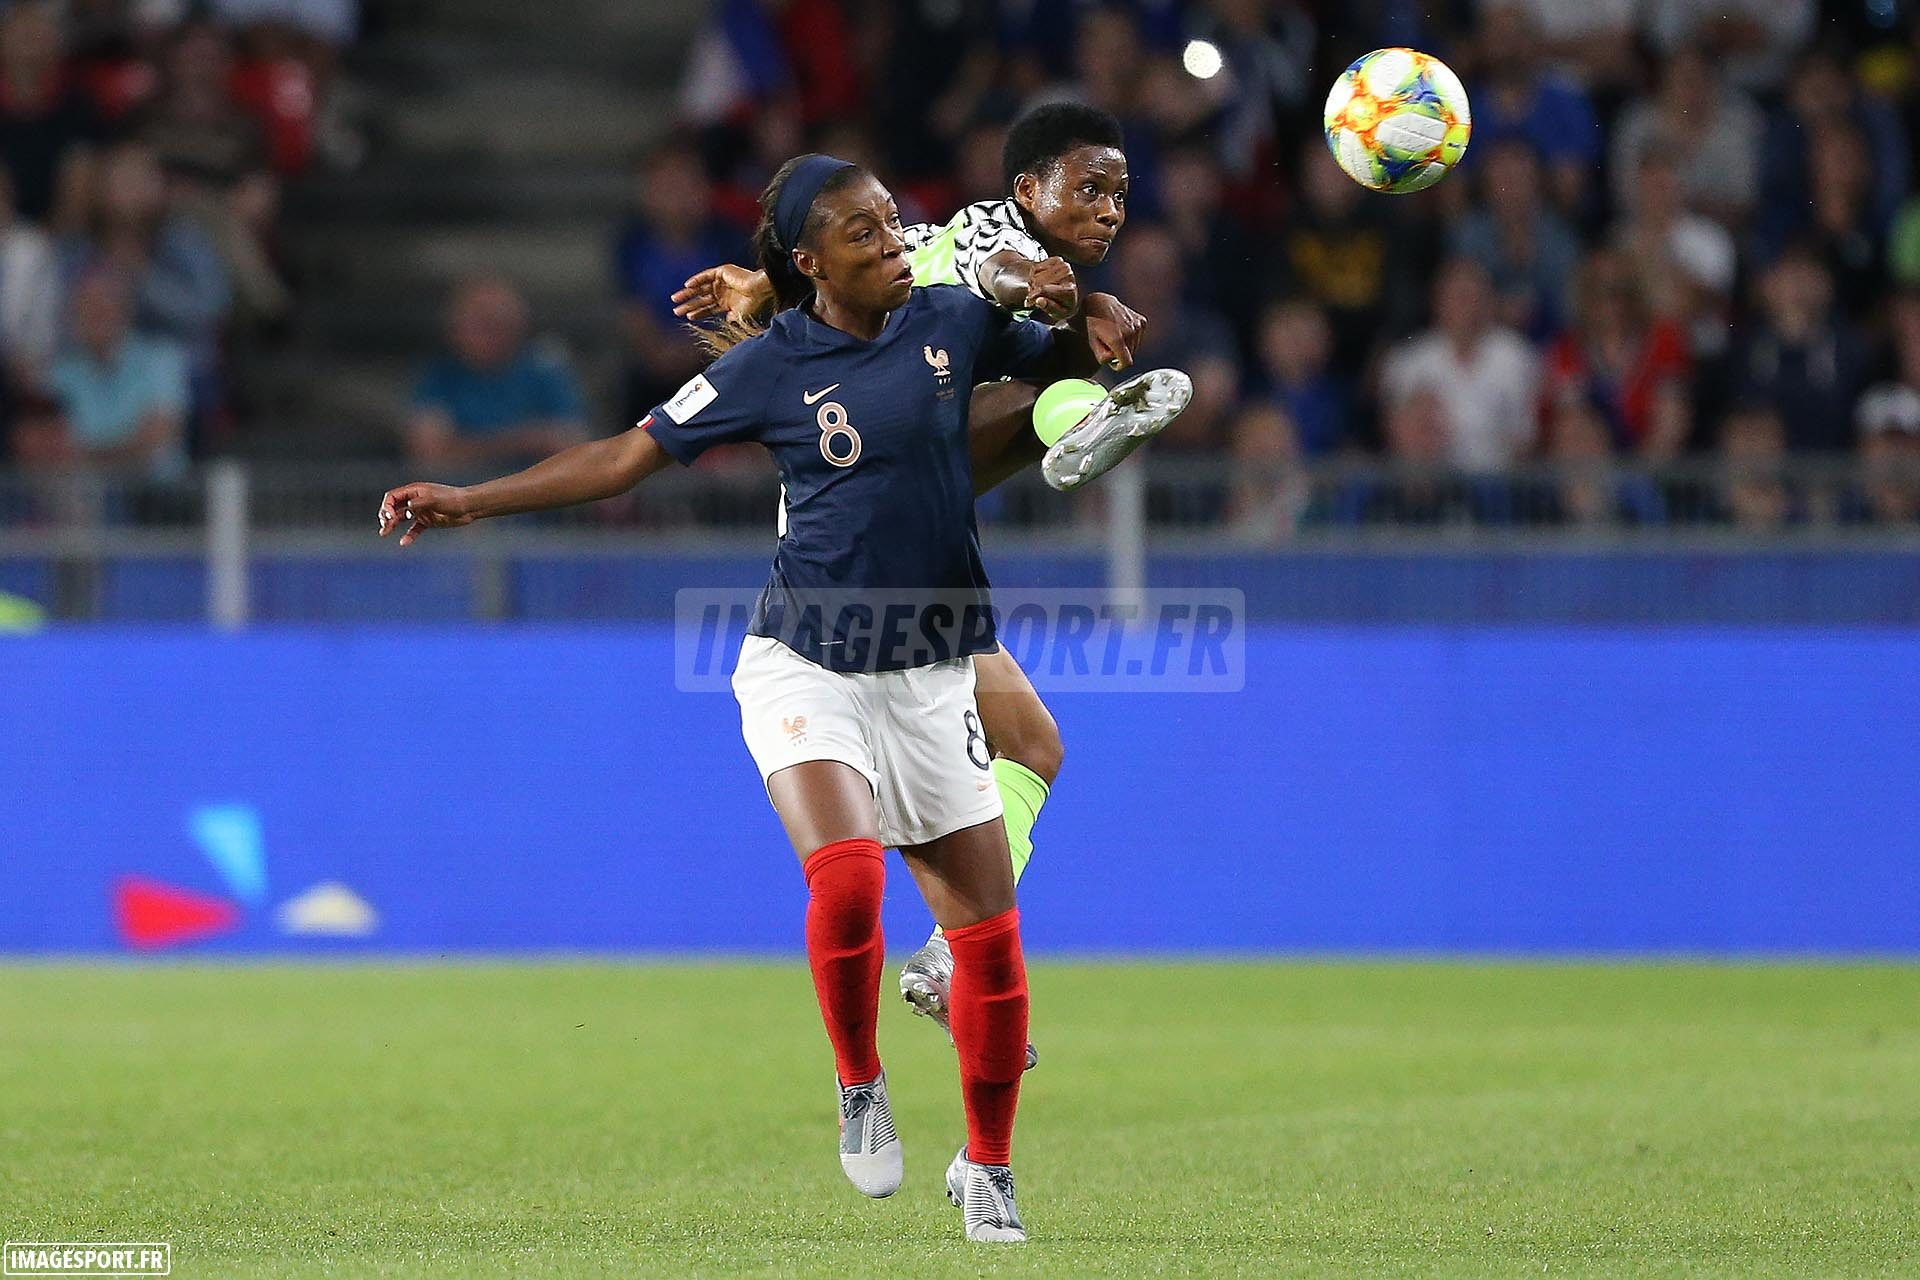 coupe-du-monde-19-nigeria-france_31